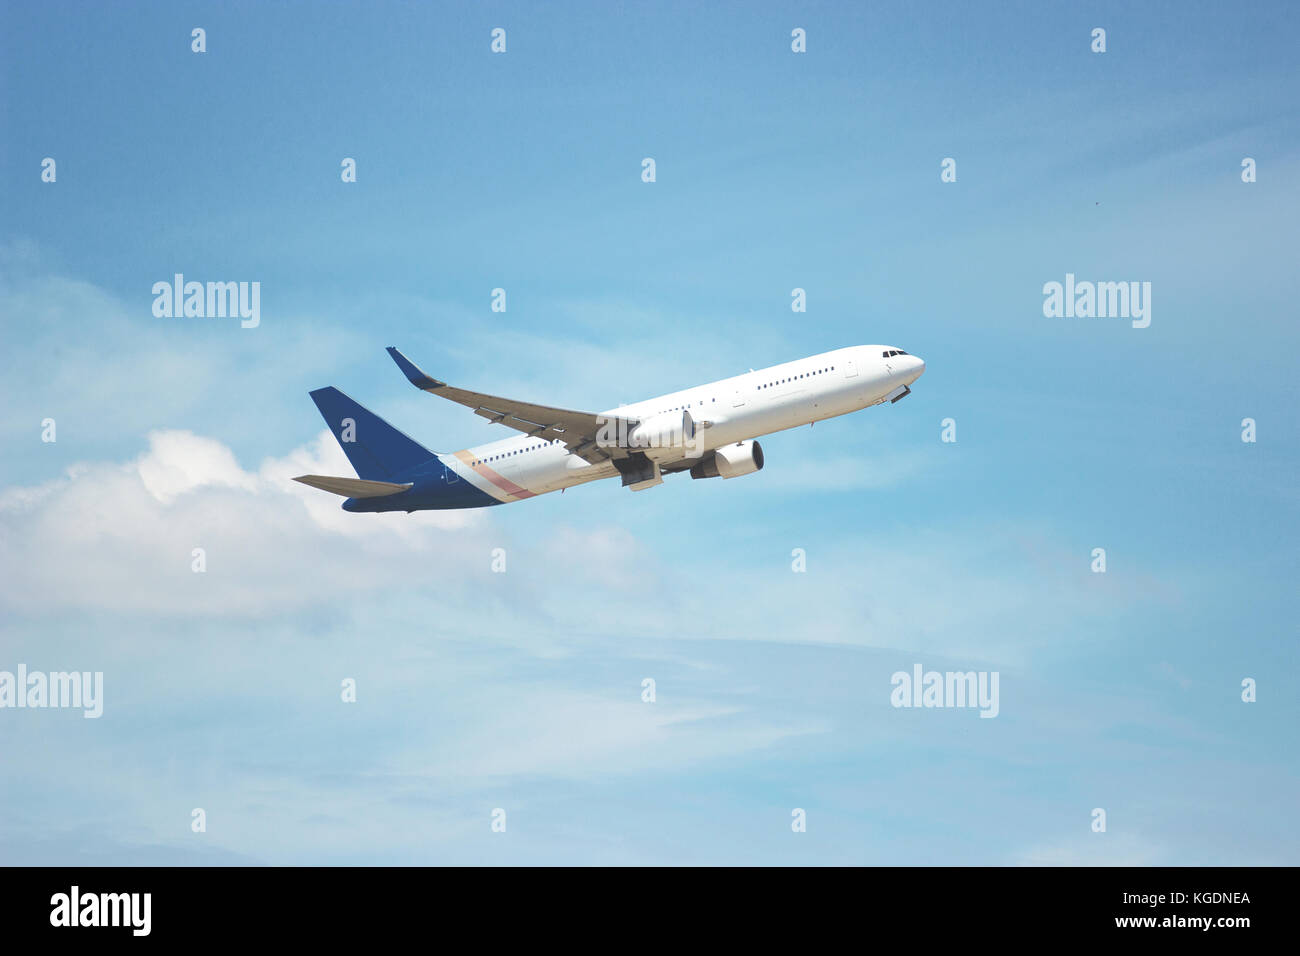 Plane flying through clouds in the sky. Jet aircraft. Travelling concept. Aviation and aerospace industries concepts. - Stock Image